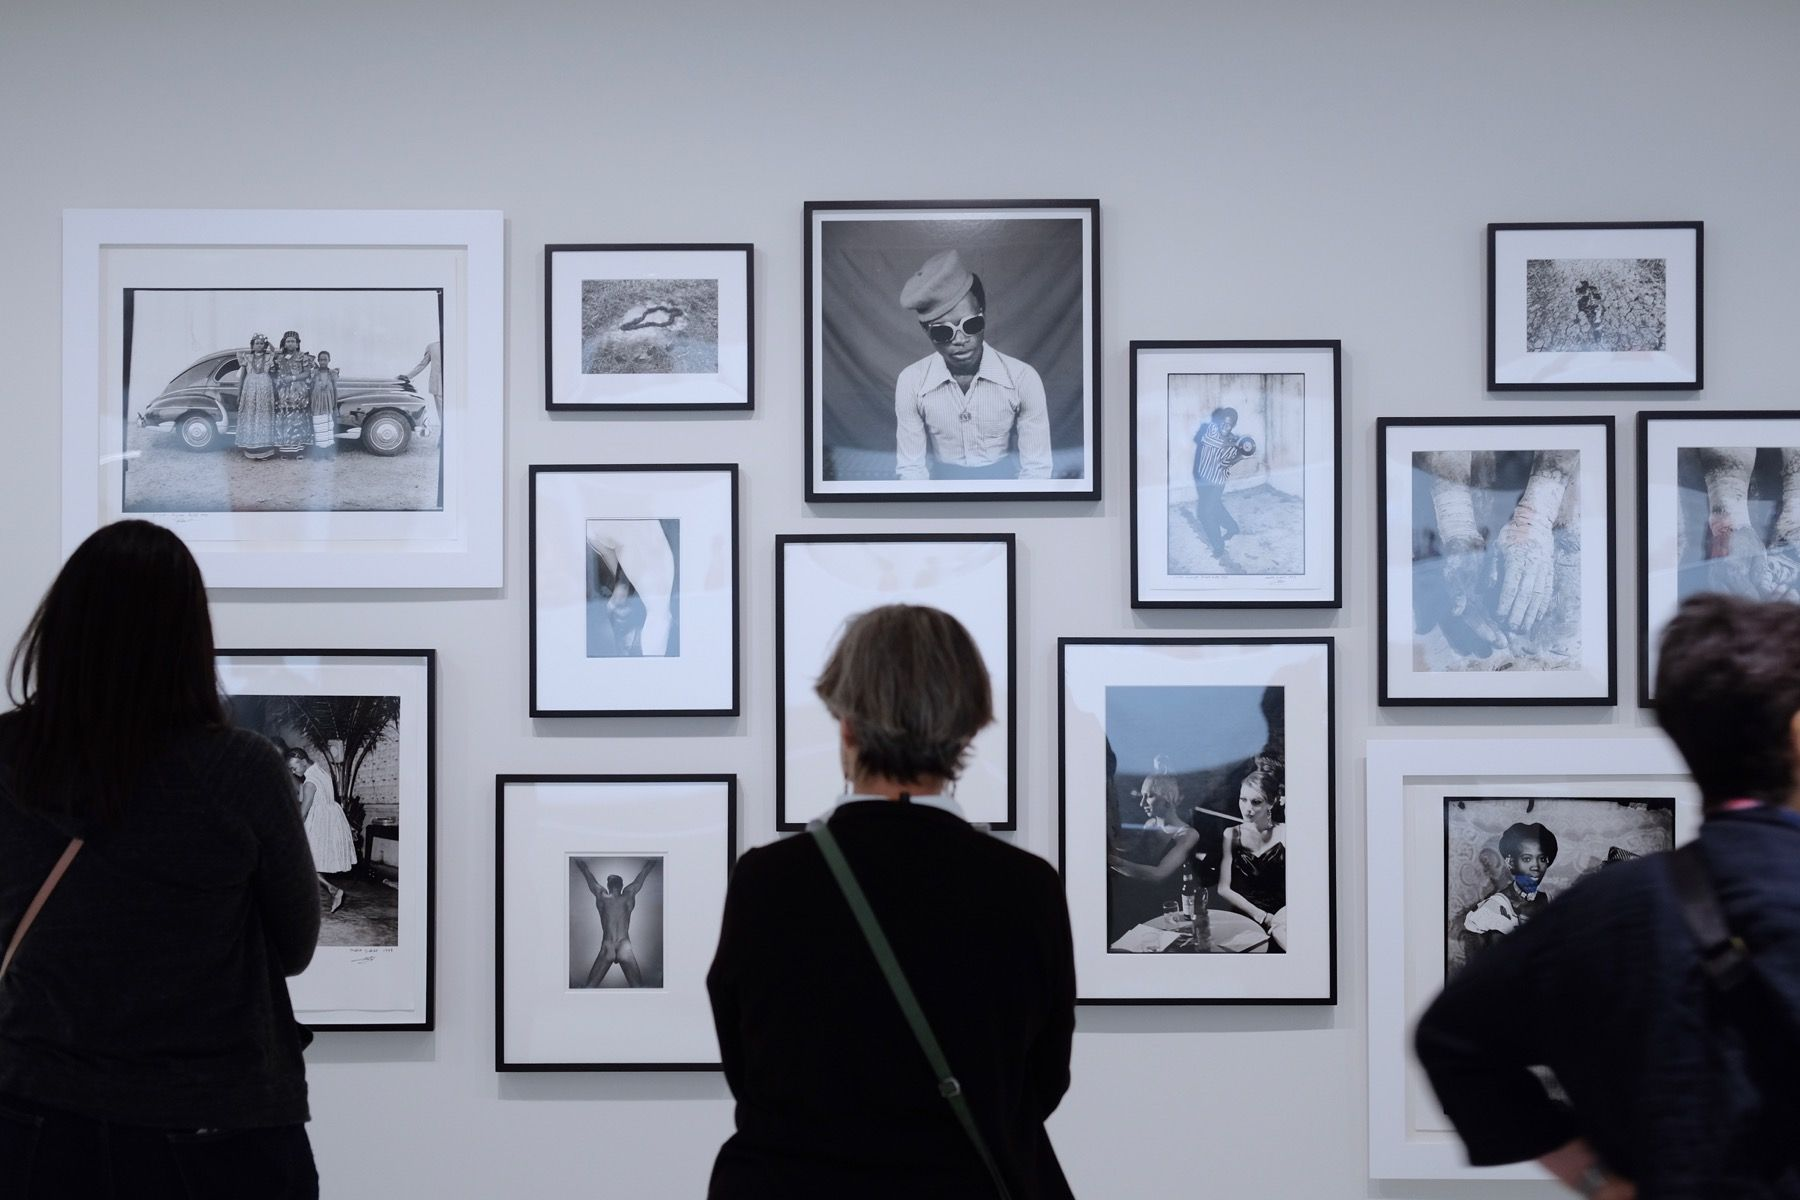 A lady looking at a series of portraits, with her back to the camera.